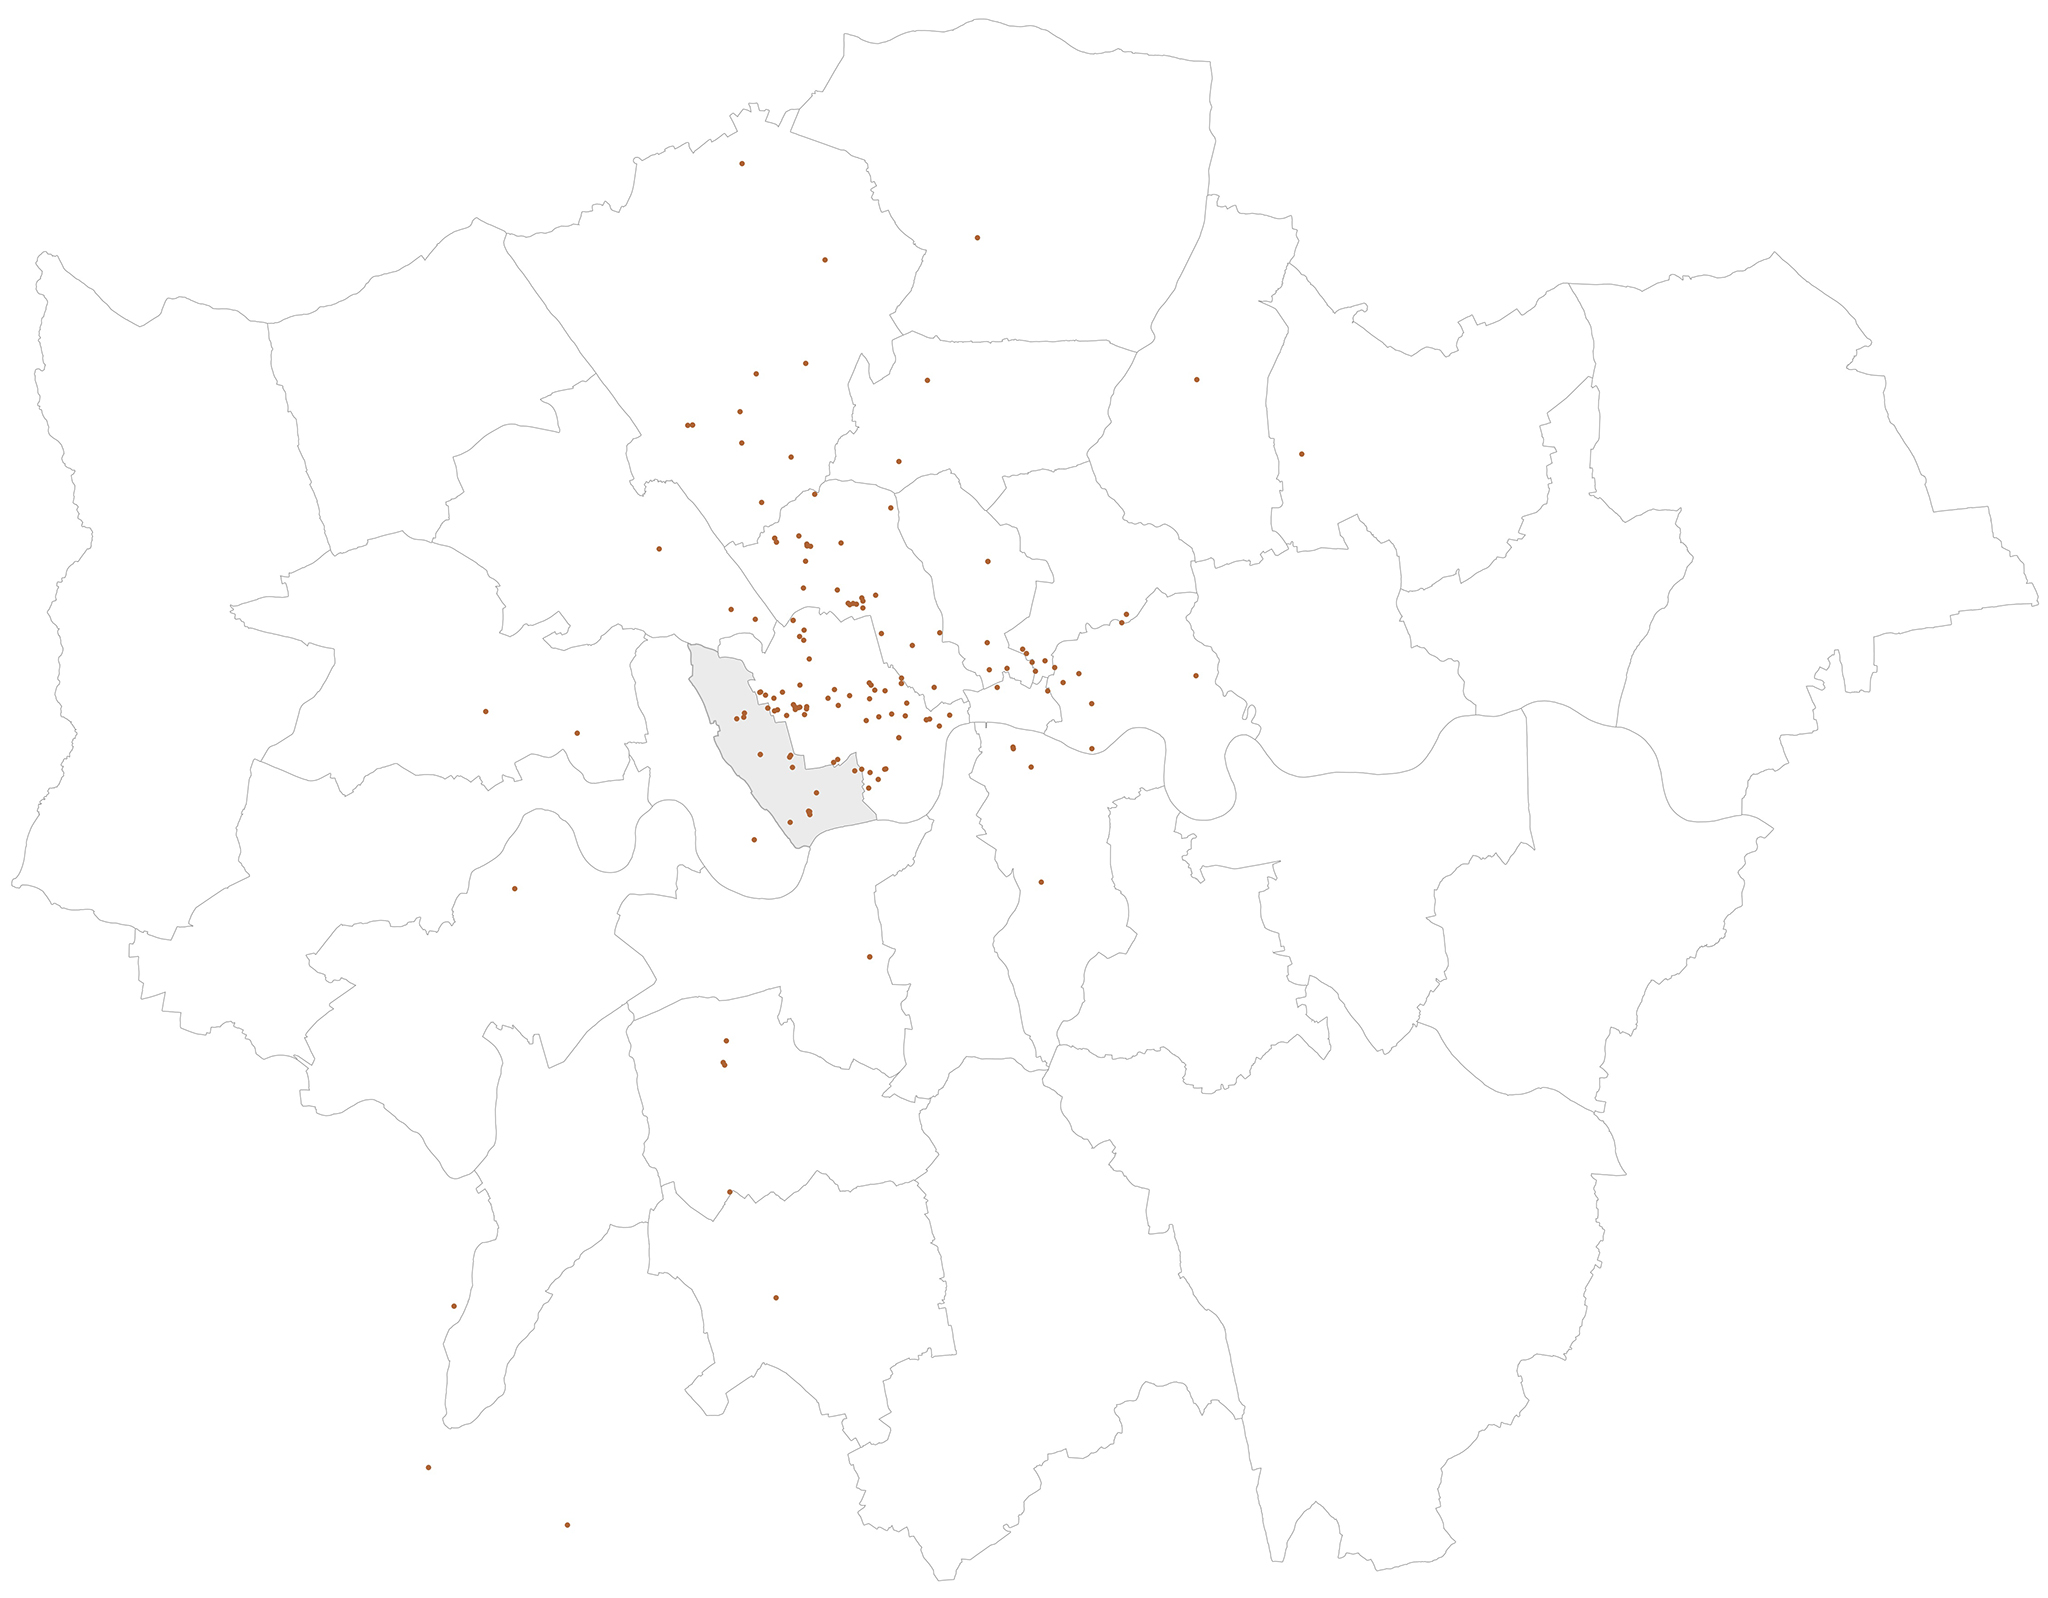 Kensington and Chelsea Architects: Patalab London project map